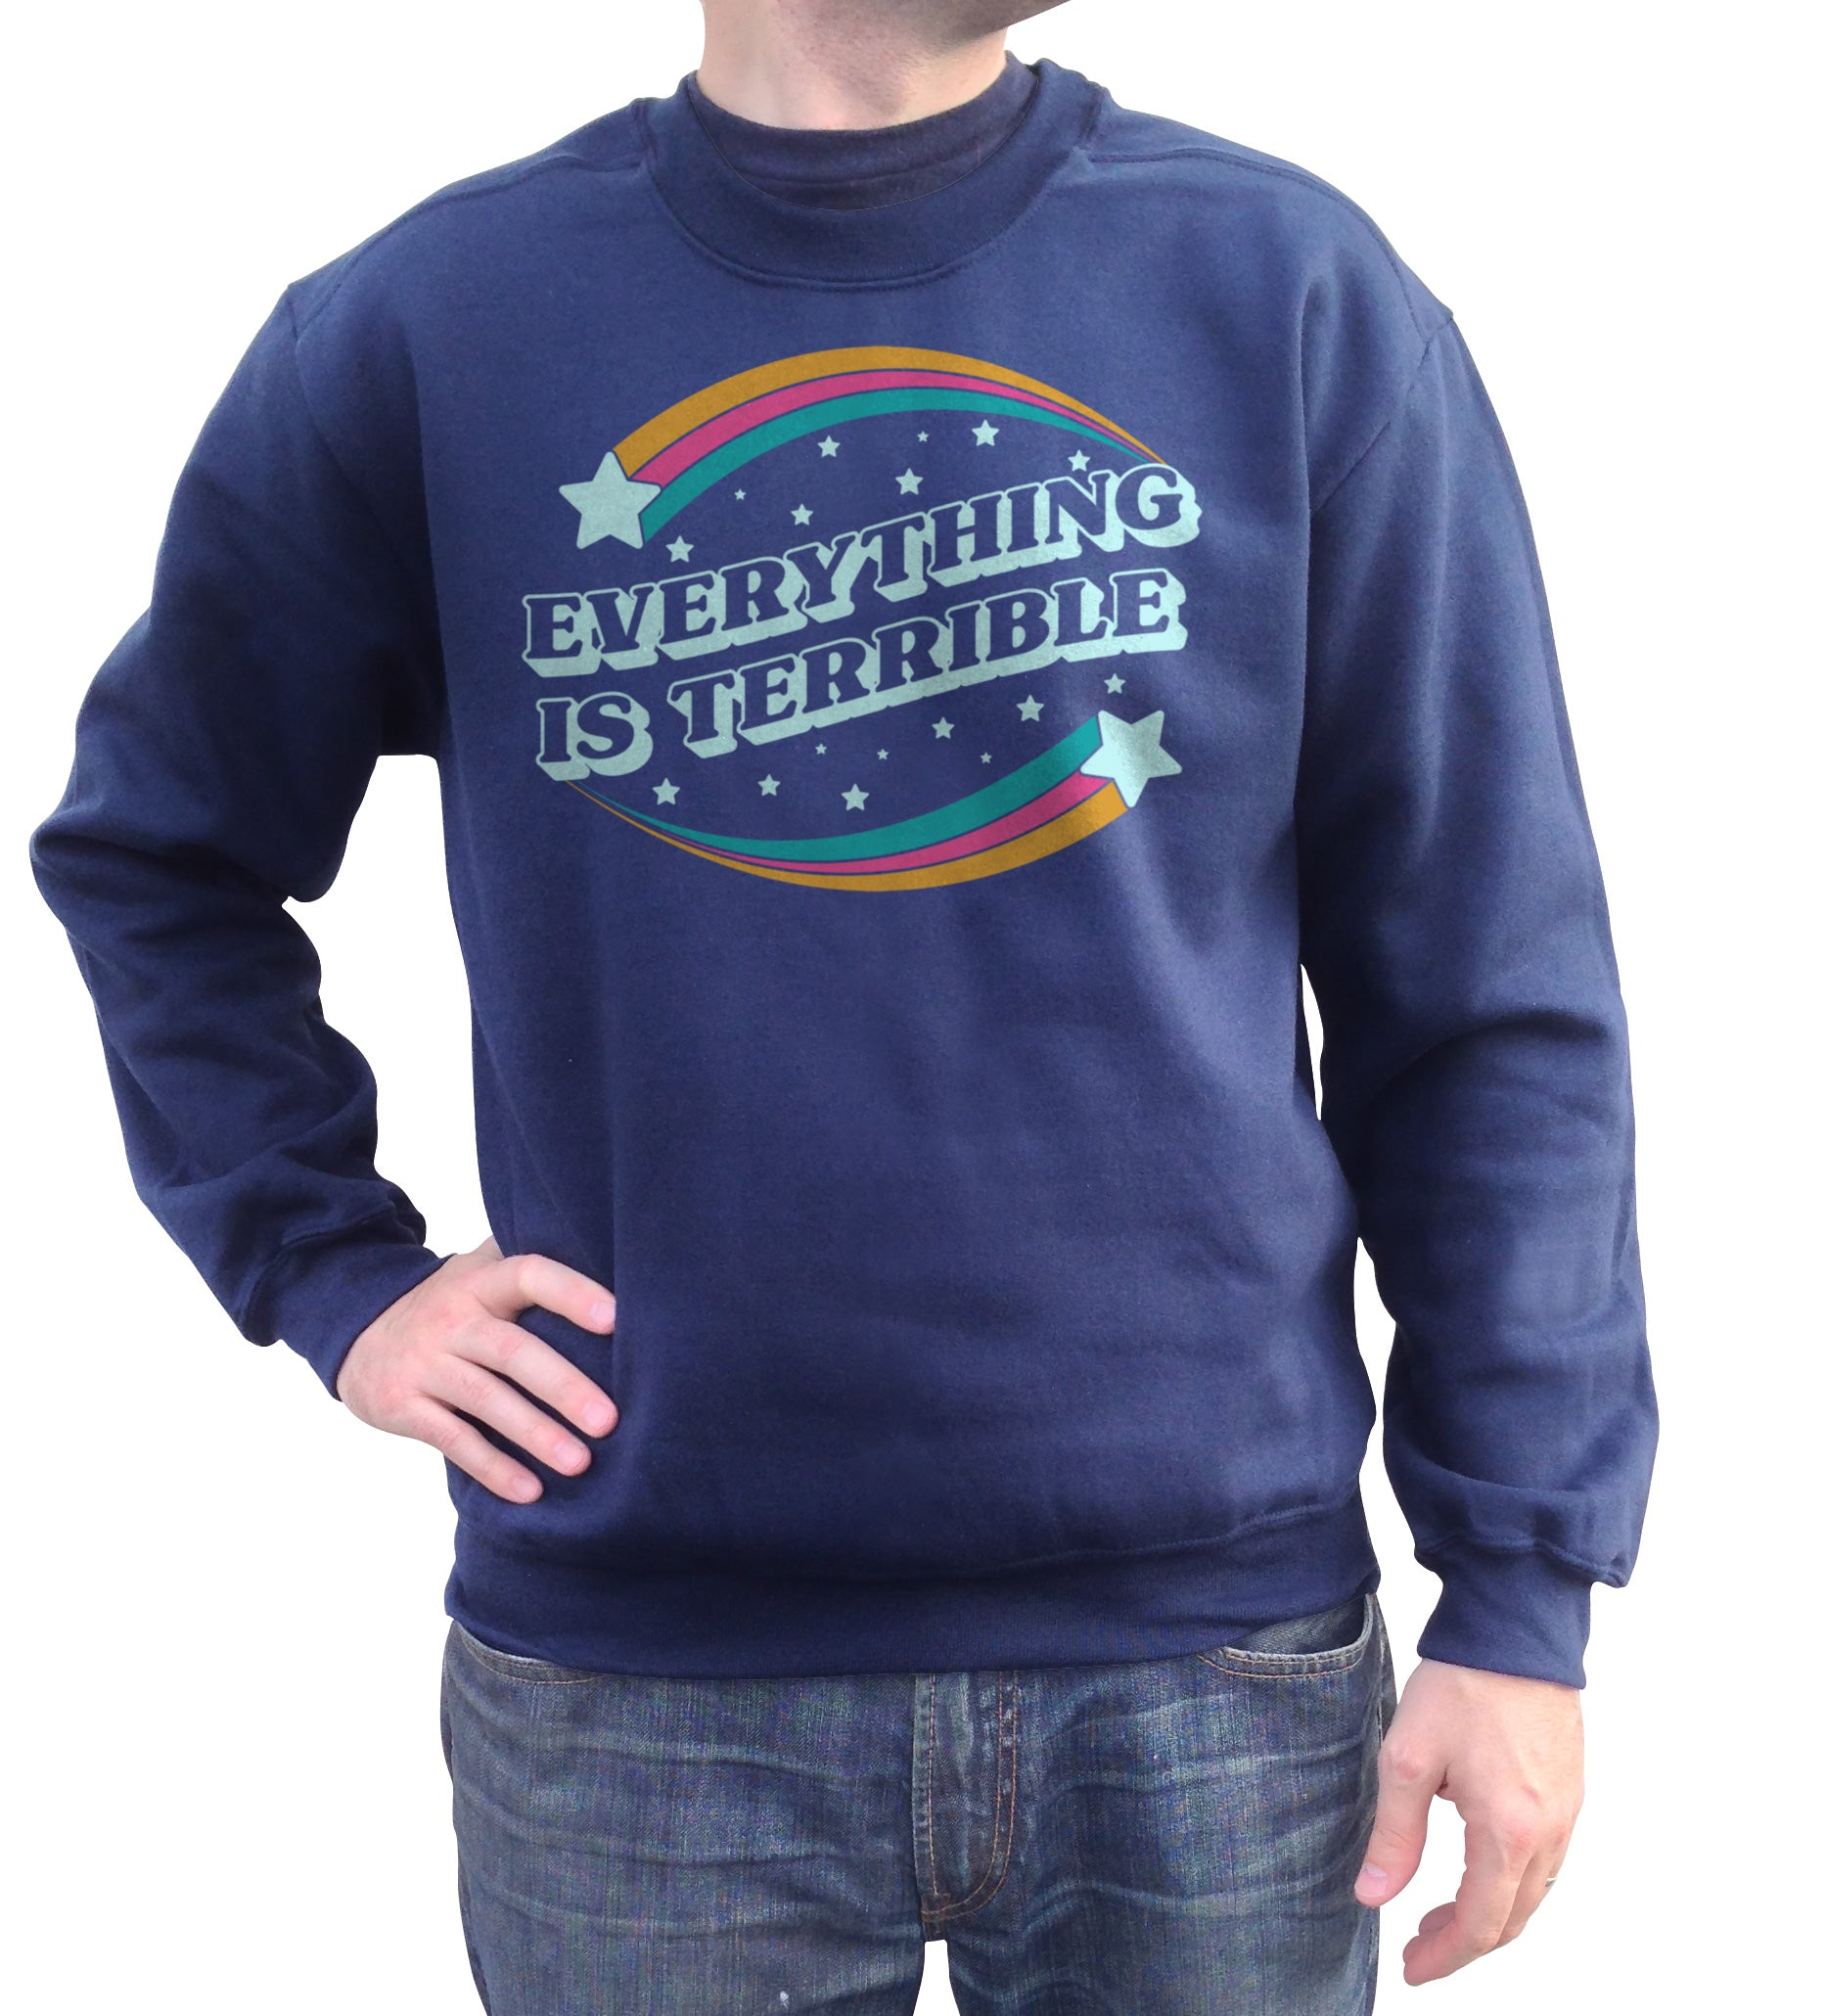 Unisex Everything is Terrible Sweatshirt